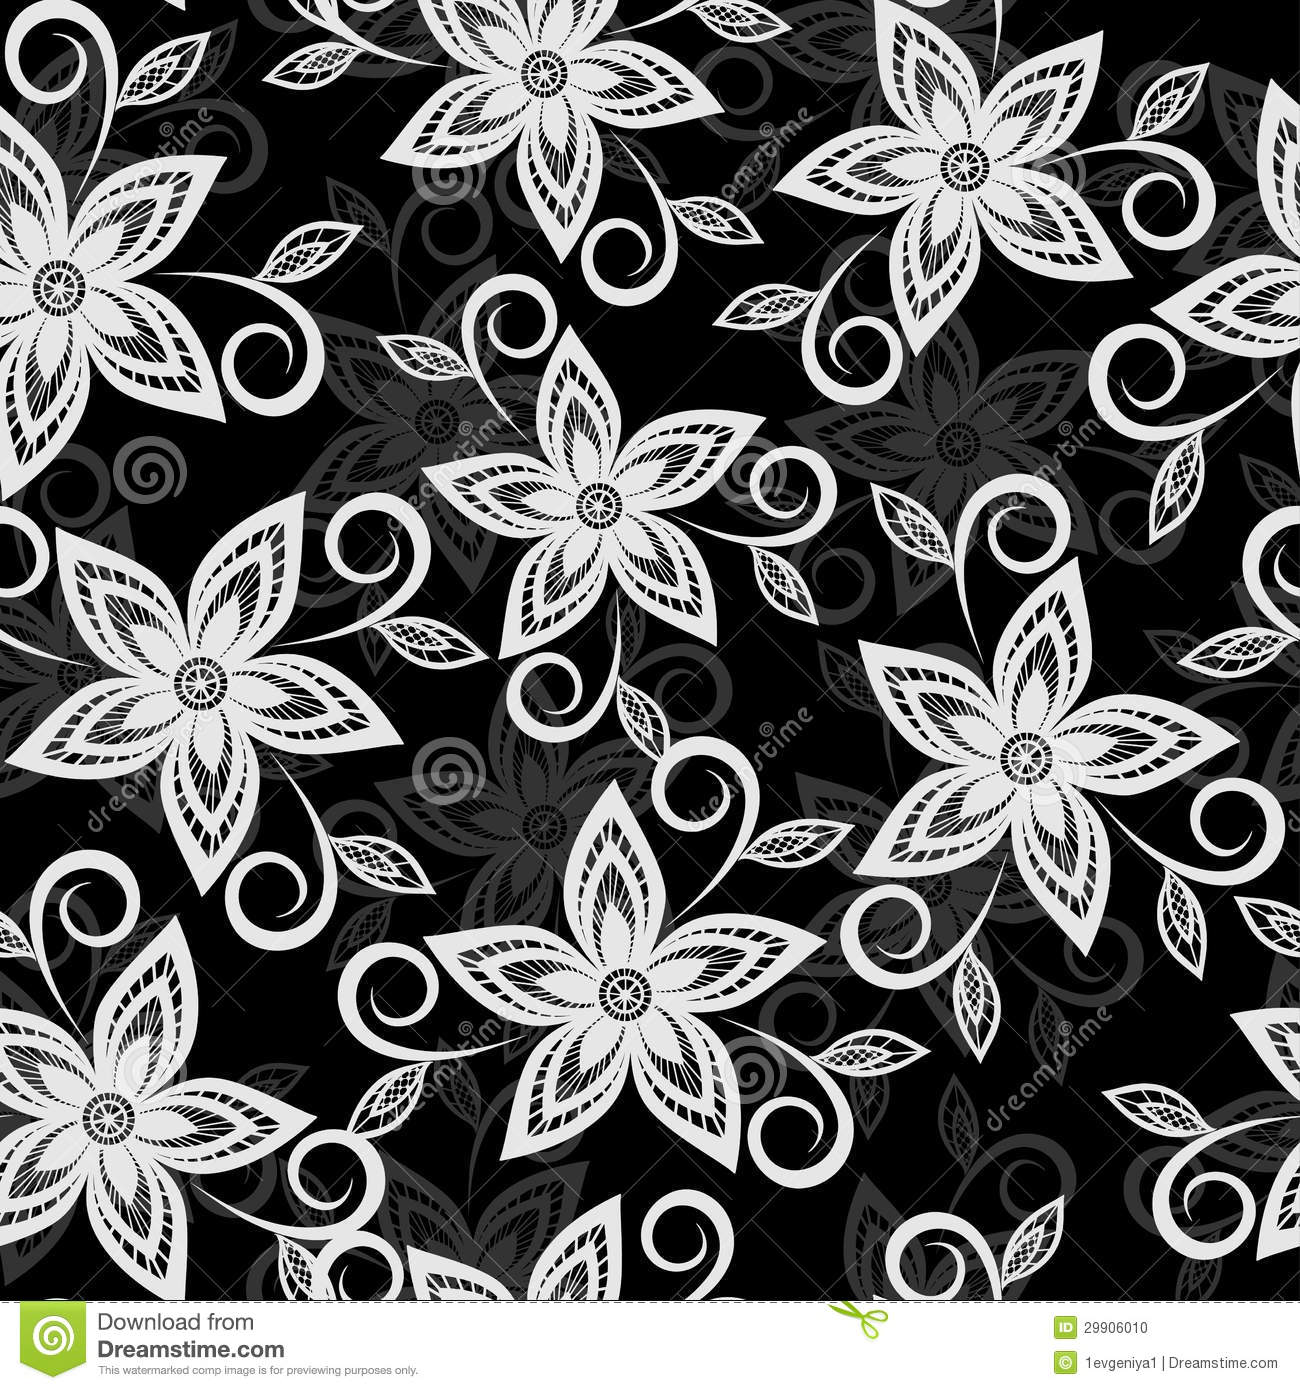 Black and white floral background lace flowers embroidered cutwork download comp mightylinksfo